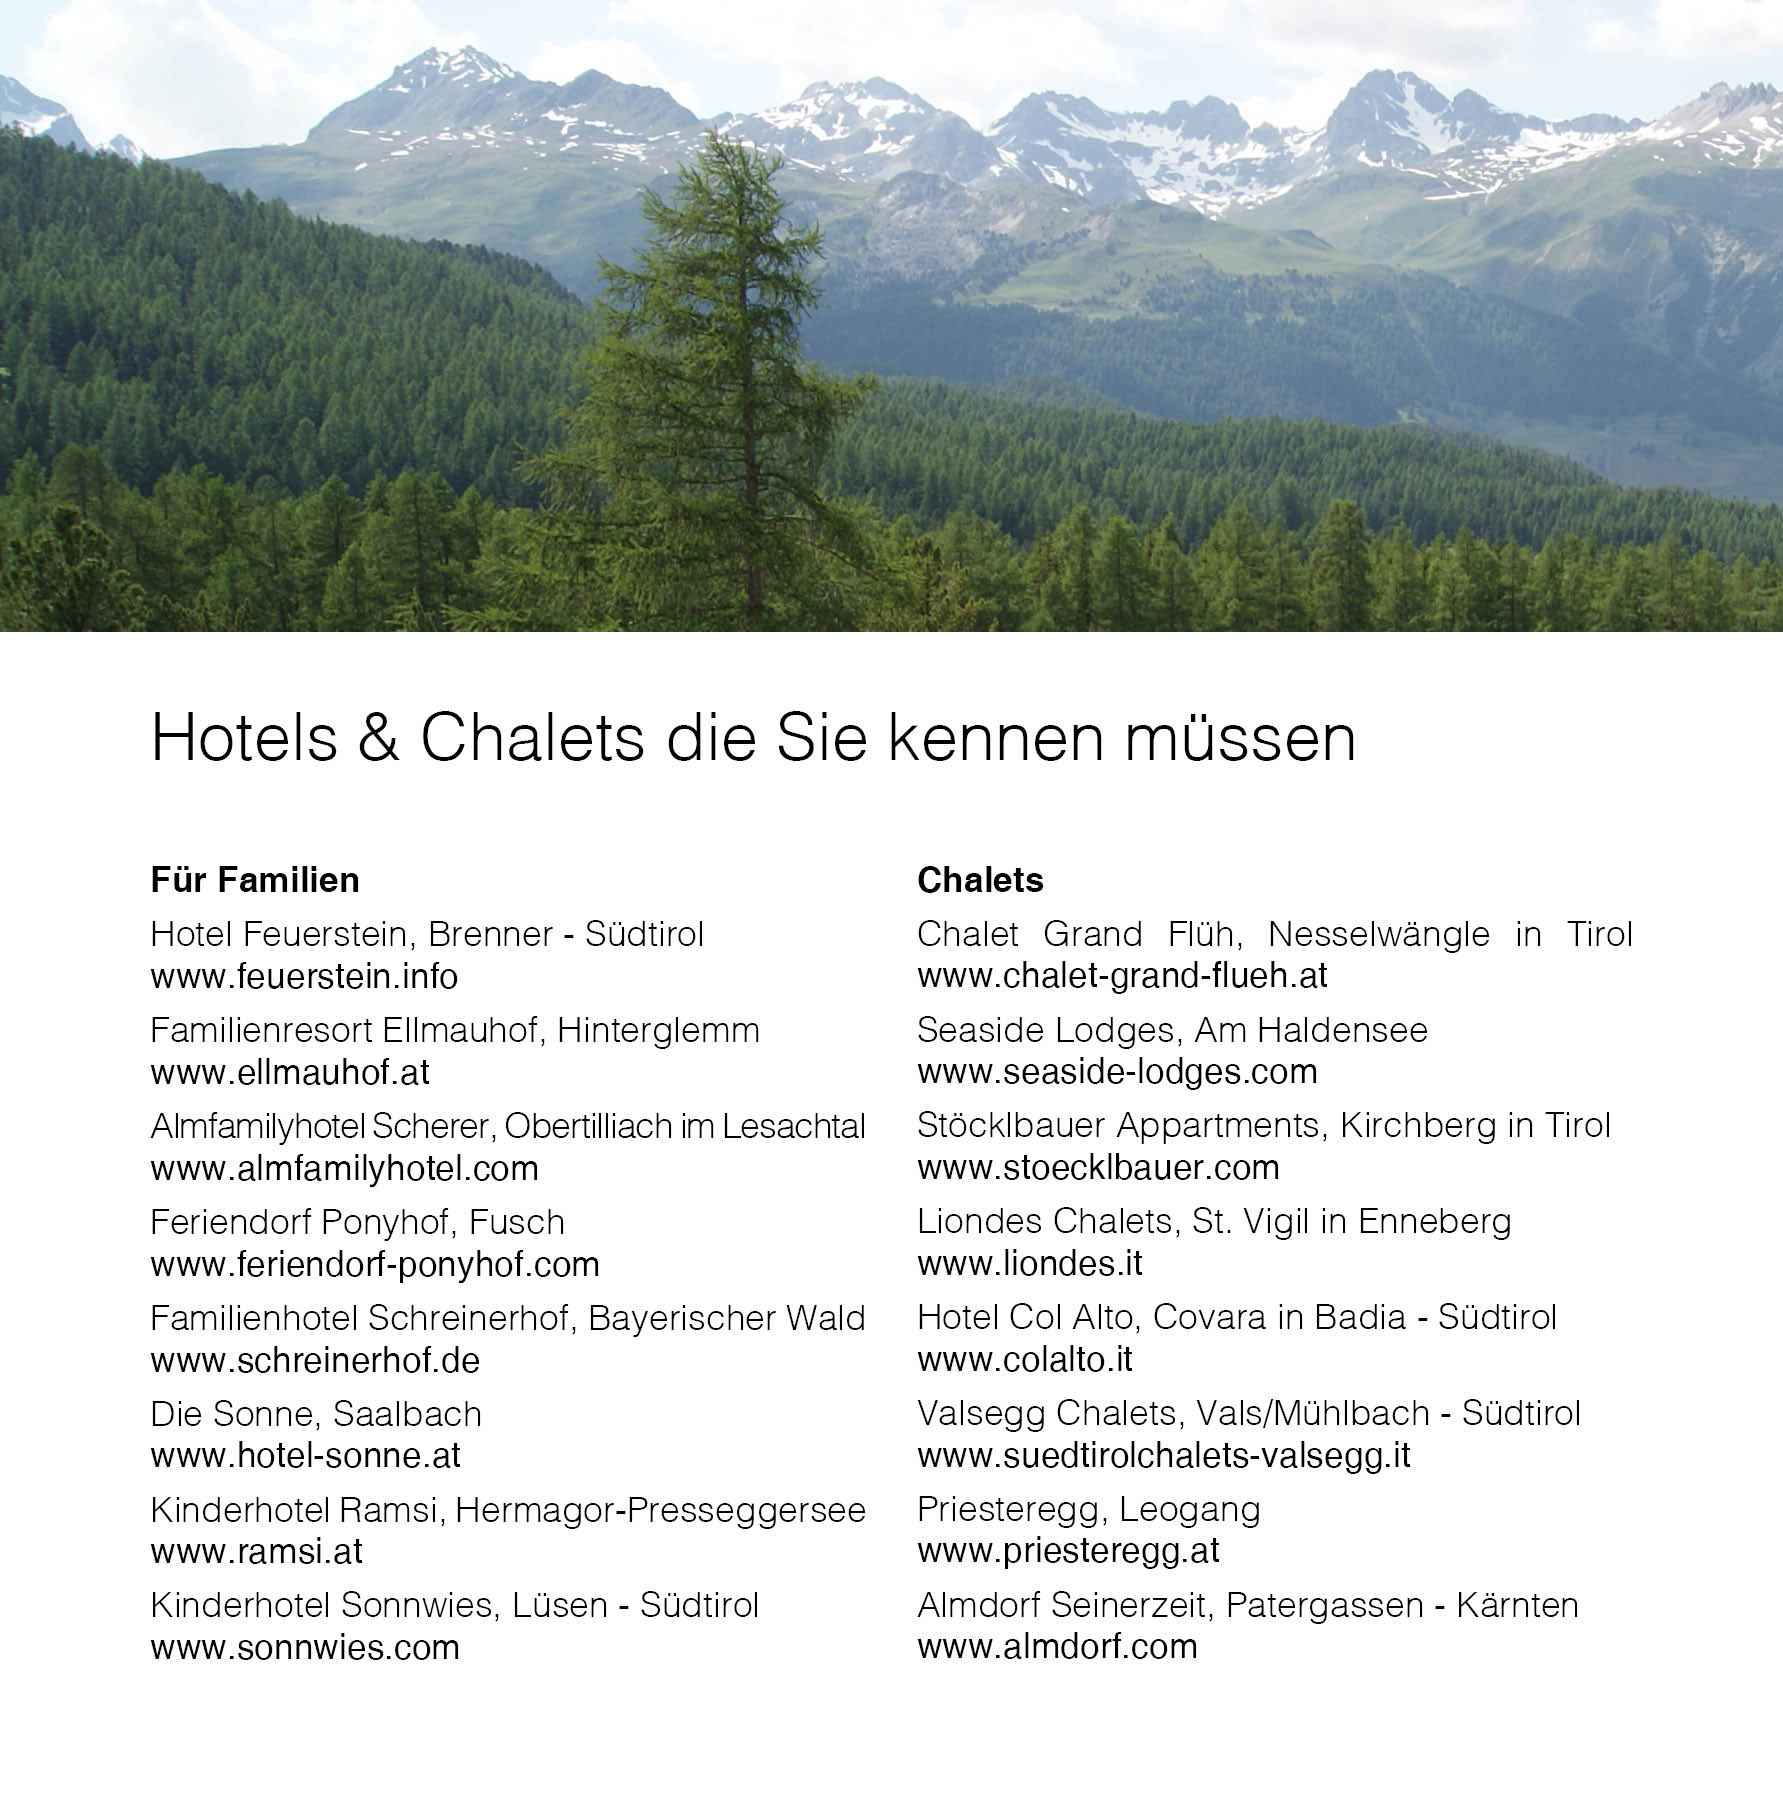 http://www.berge-exclusiv.de/wp-content/uploads/Pocket-Guide-18041614.jpg